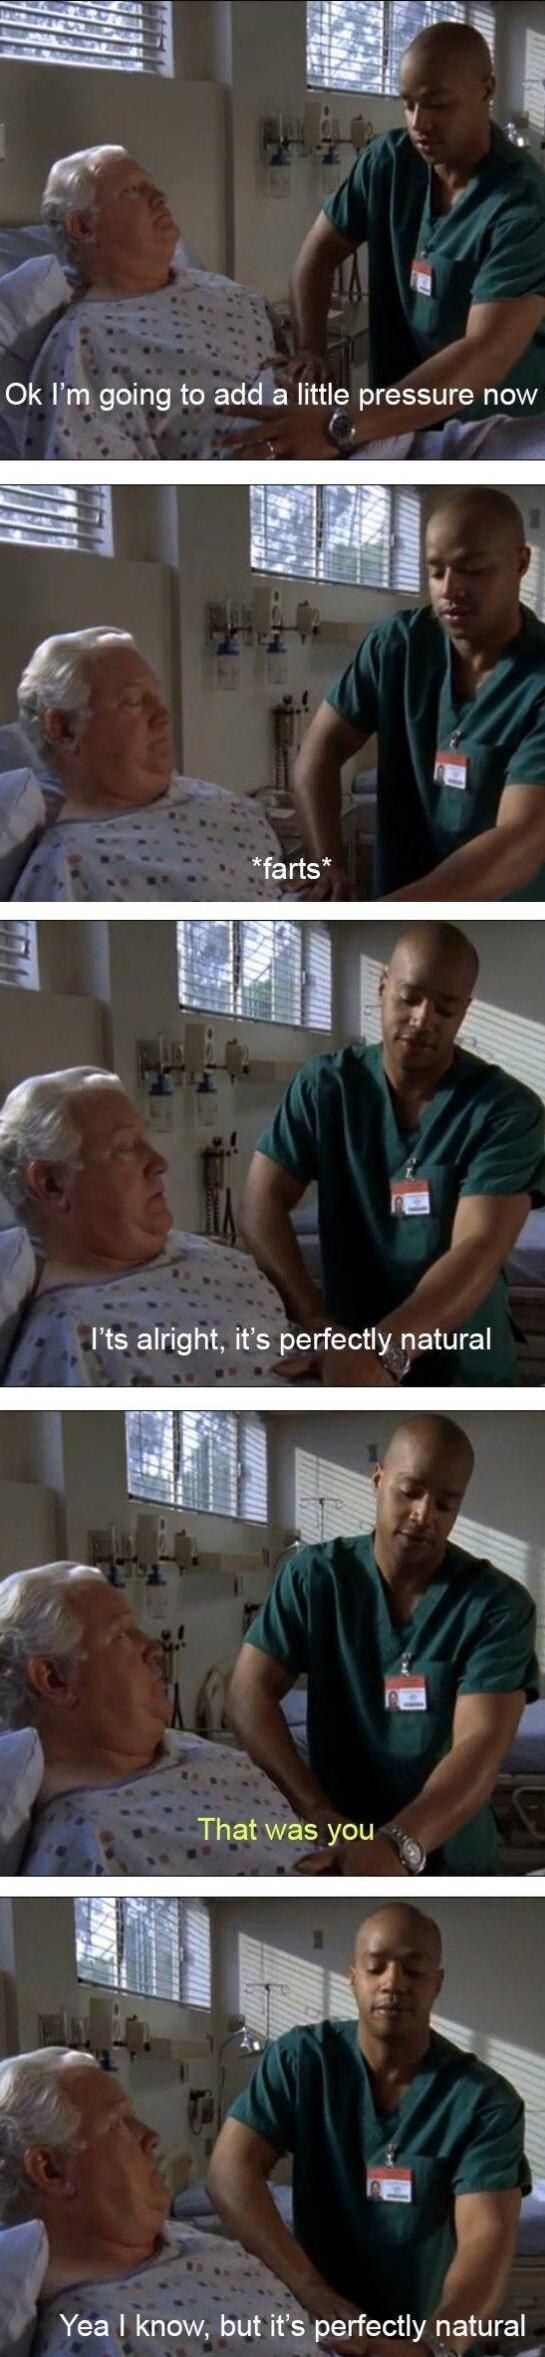 """When Turk tried to pass it off. 